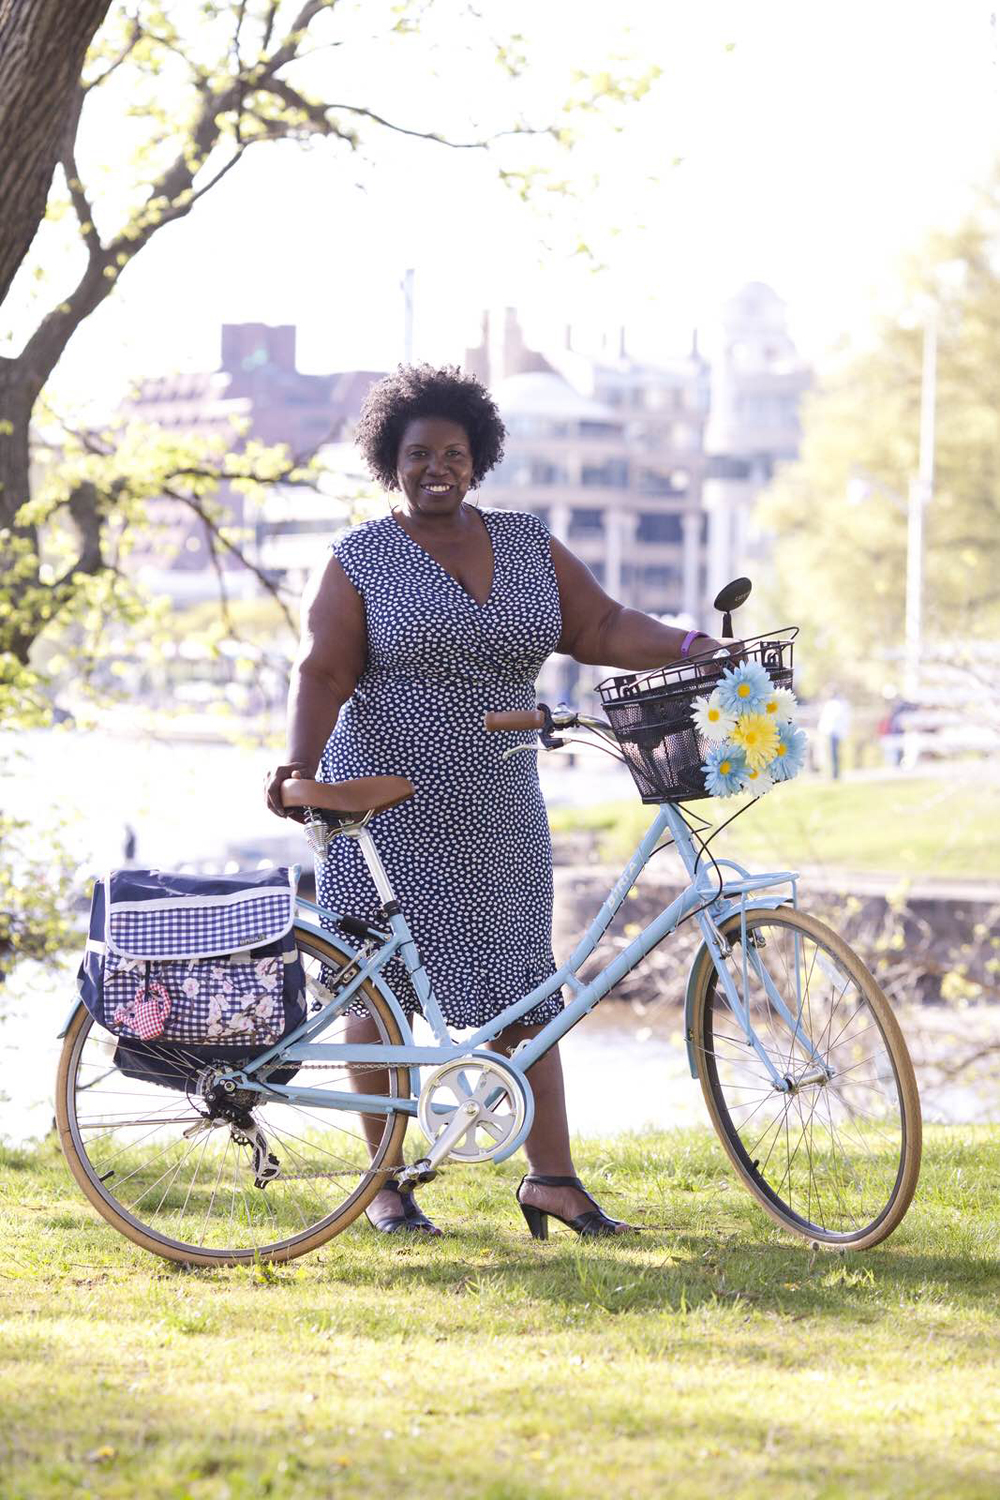 Yvonne rides a Biria with panniers by Basil and front basket by Sunlite.